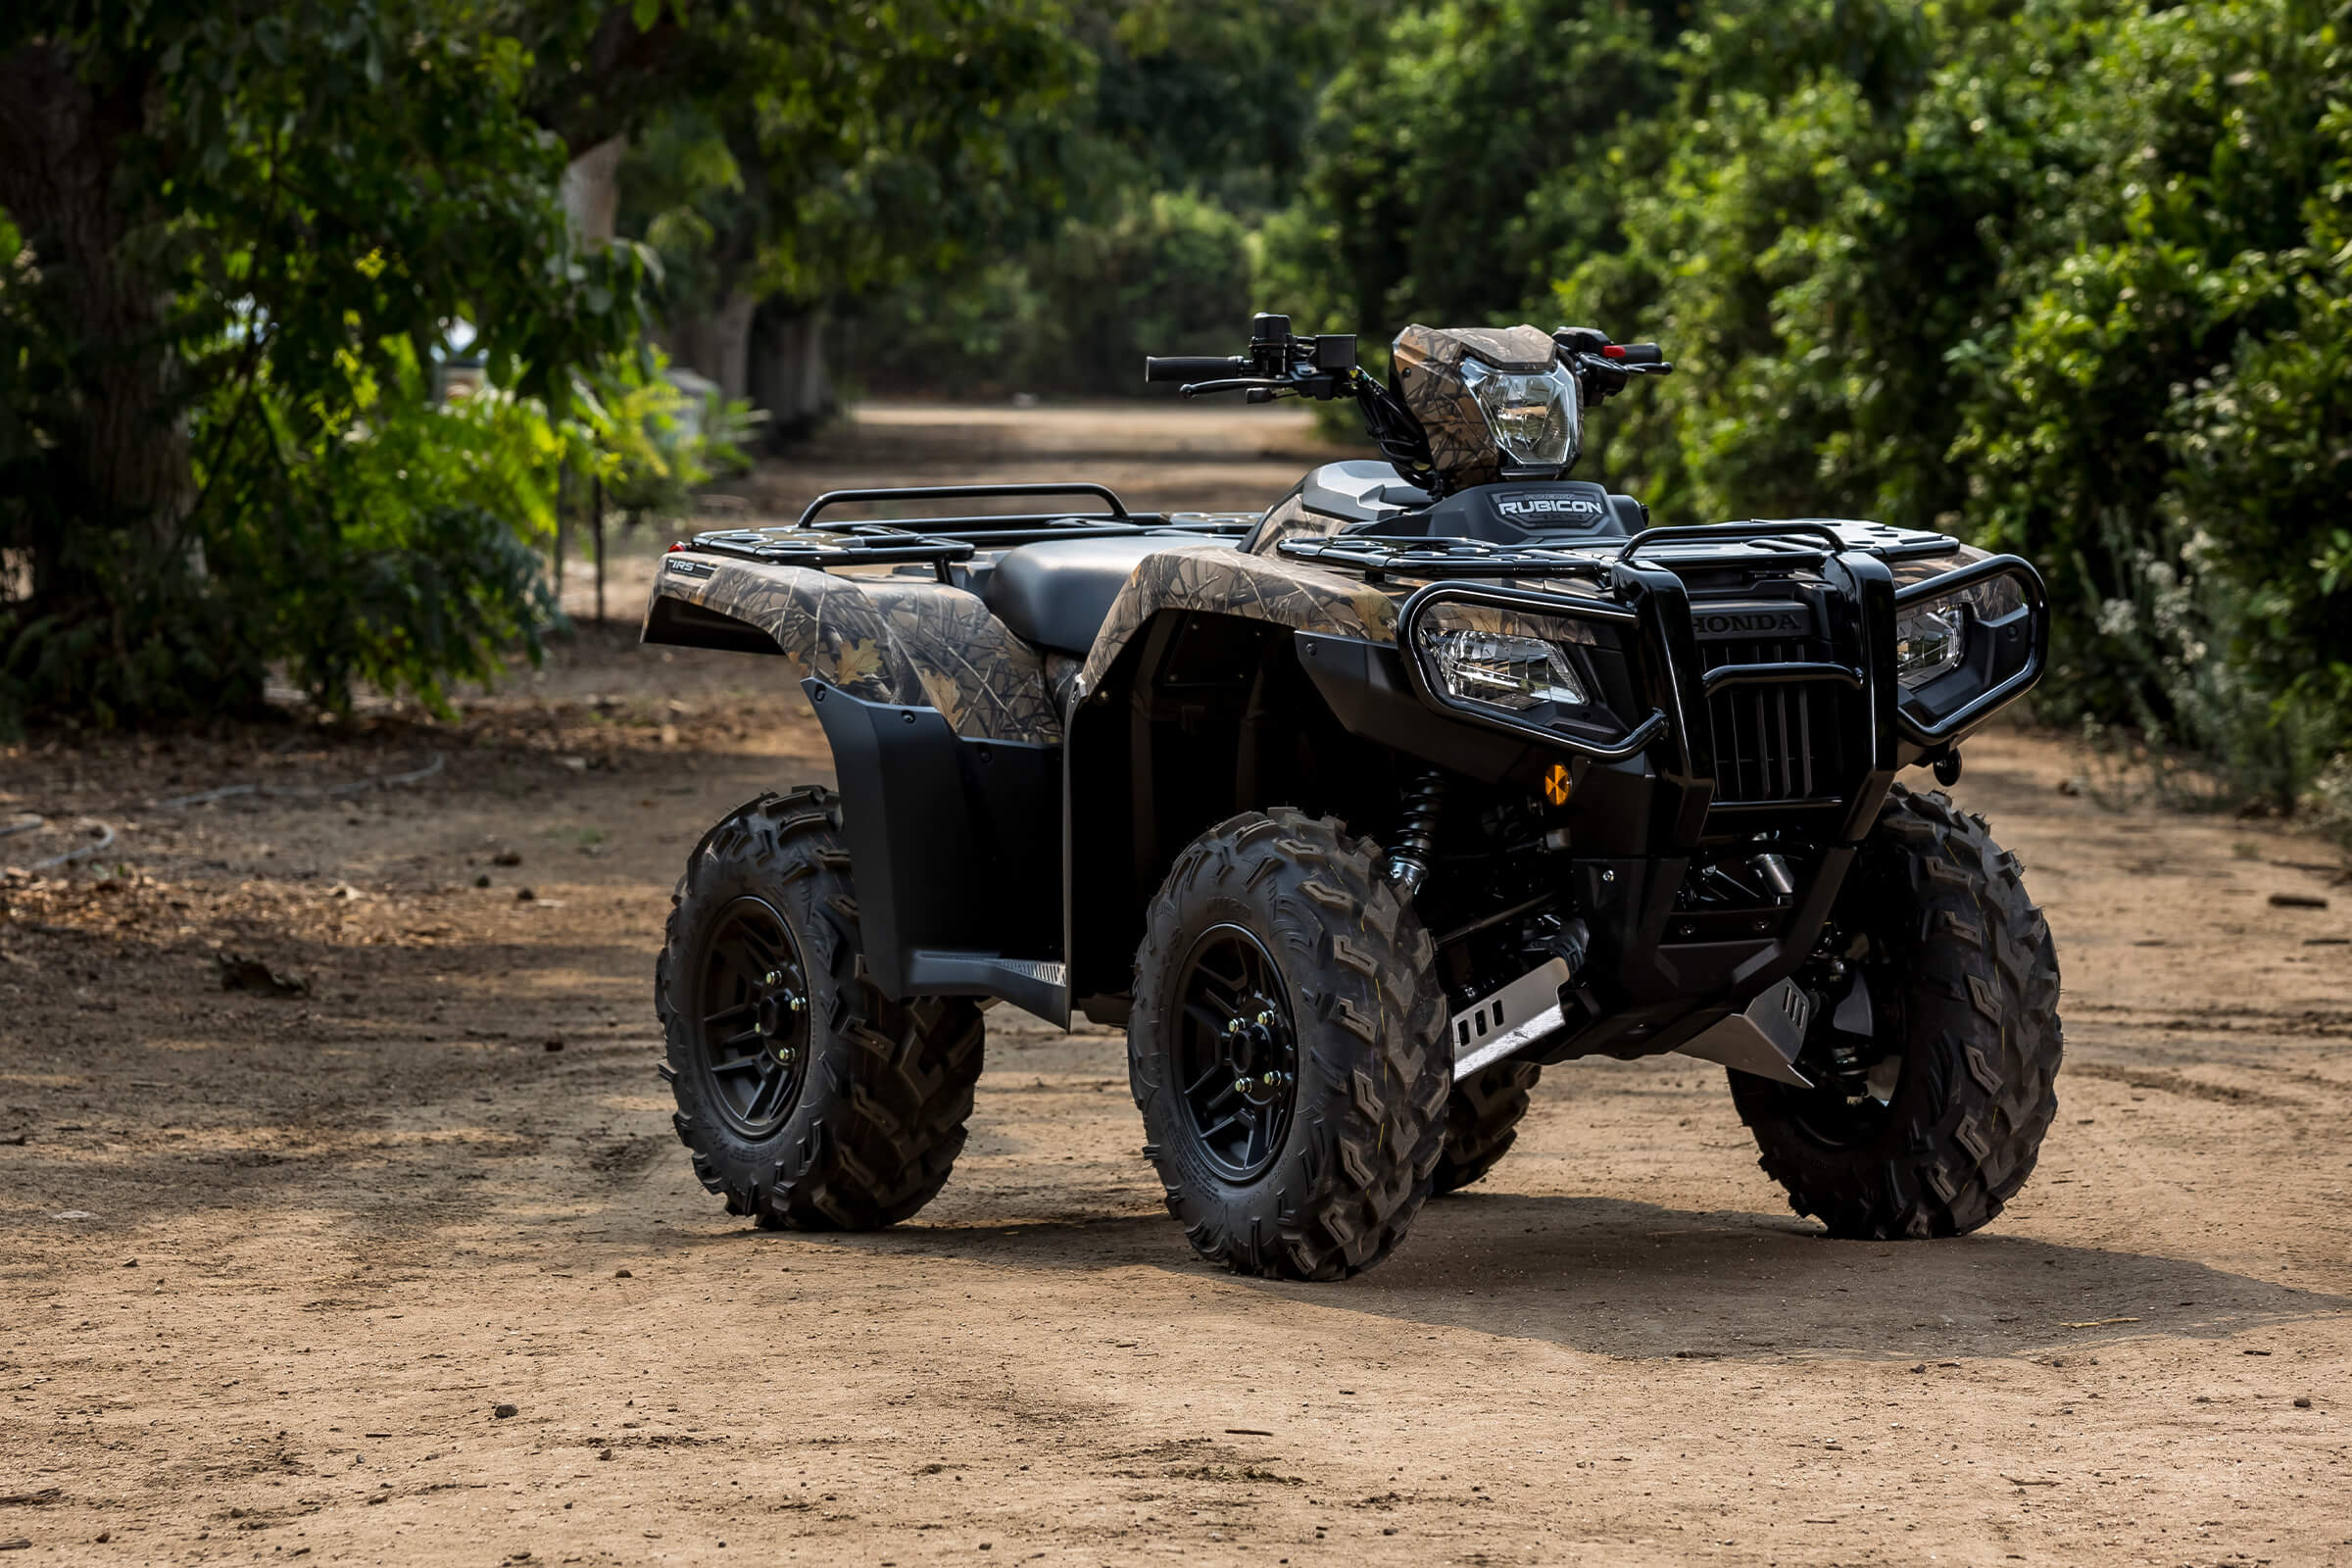 2020 FourTrax Foreman Rubicon 4x4 EPS OVERVIEW - Honda